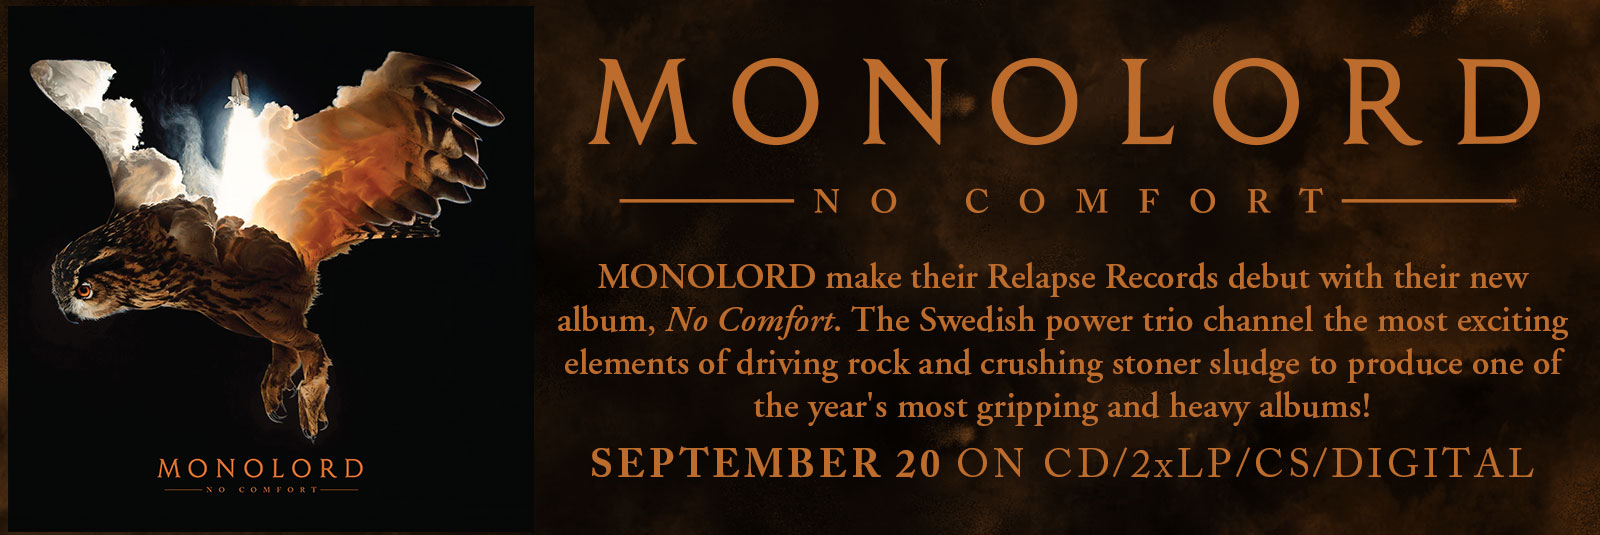 monolord-no-comfort-doom-metal-hard-rock-relapse-september-20